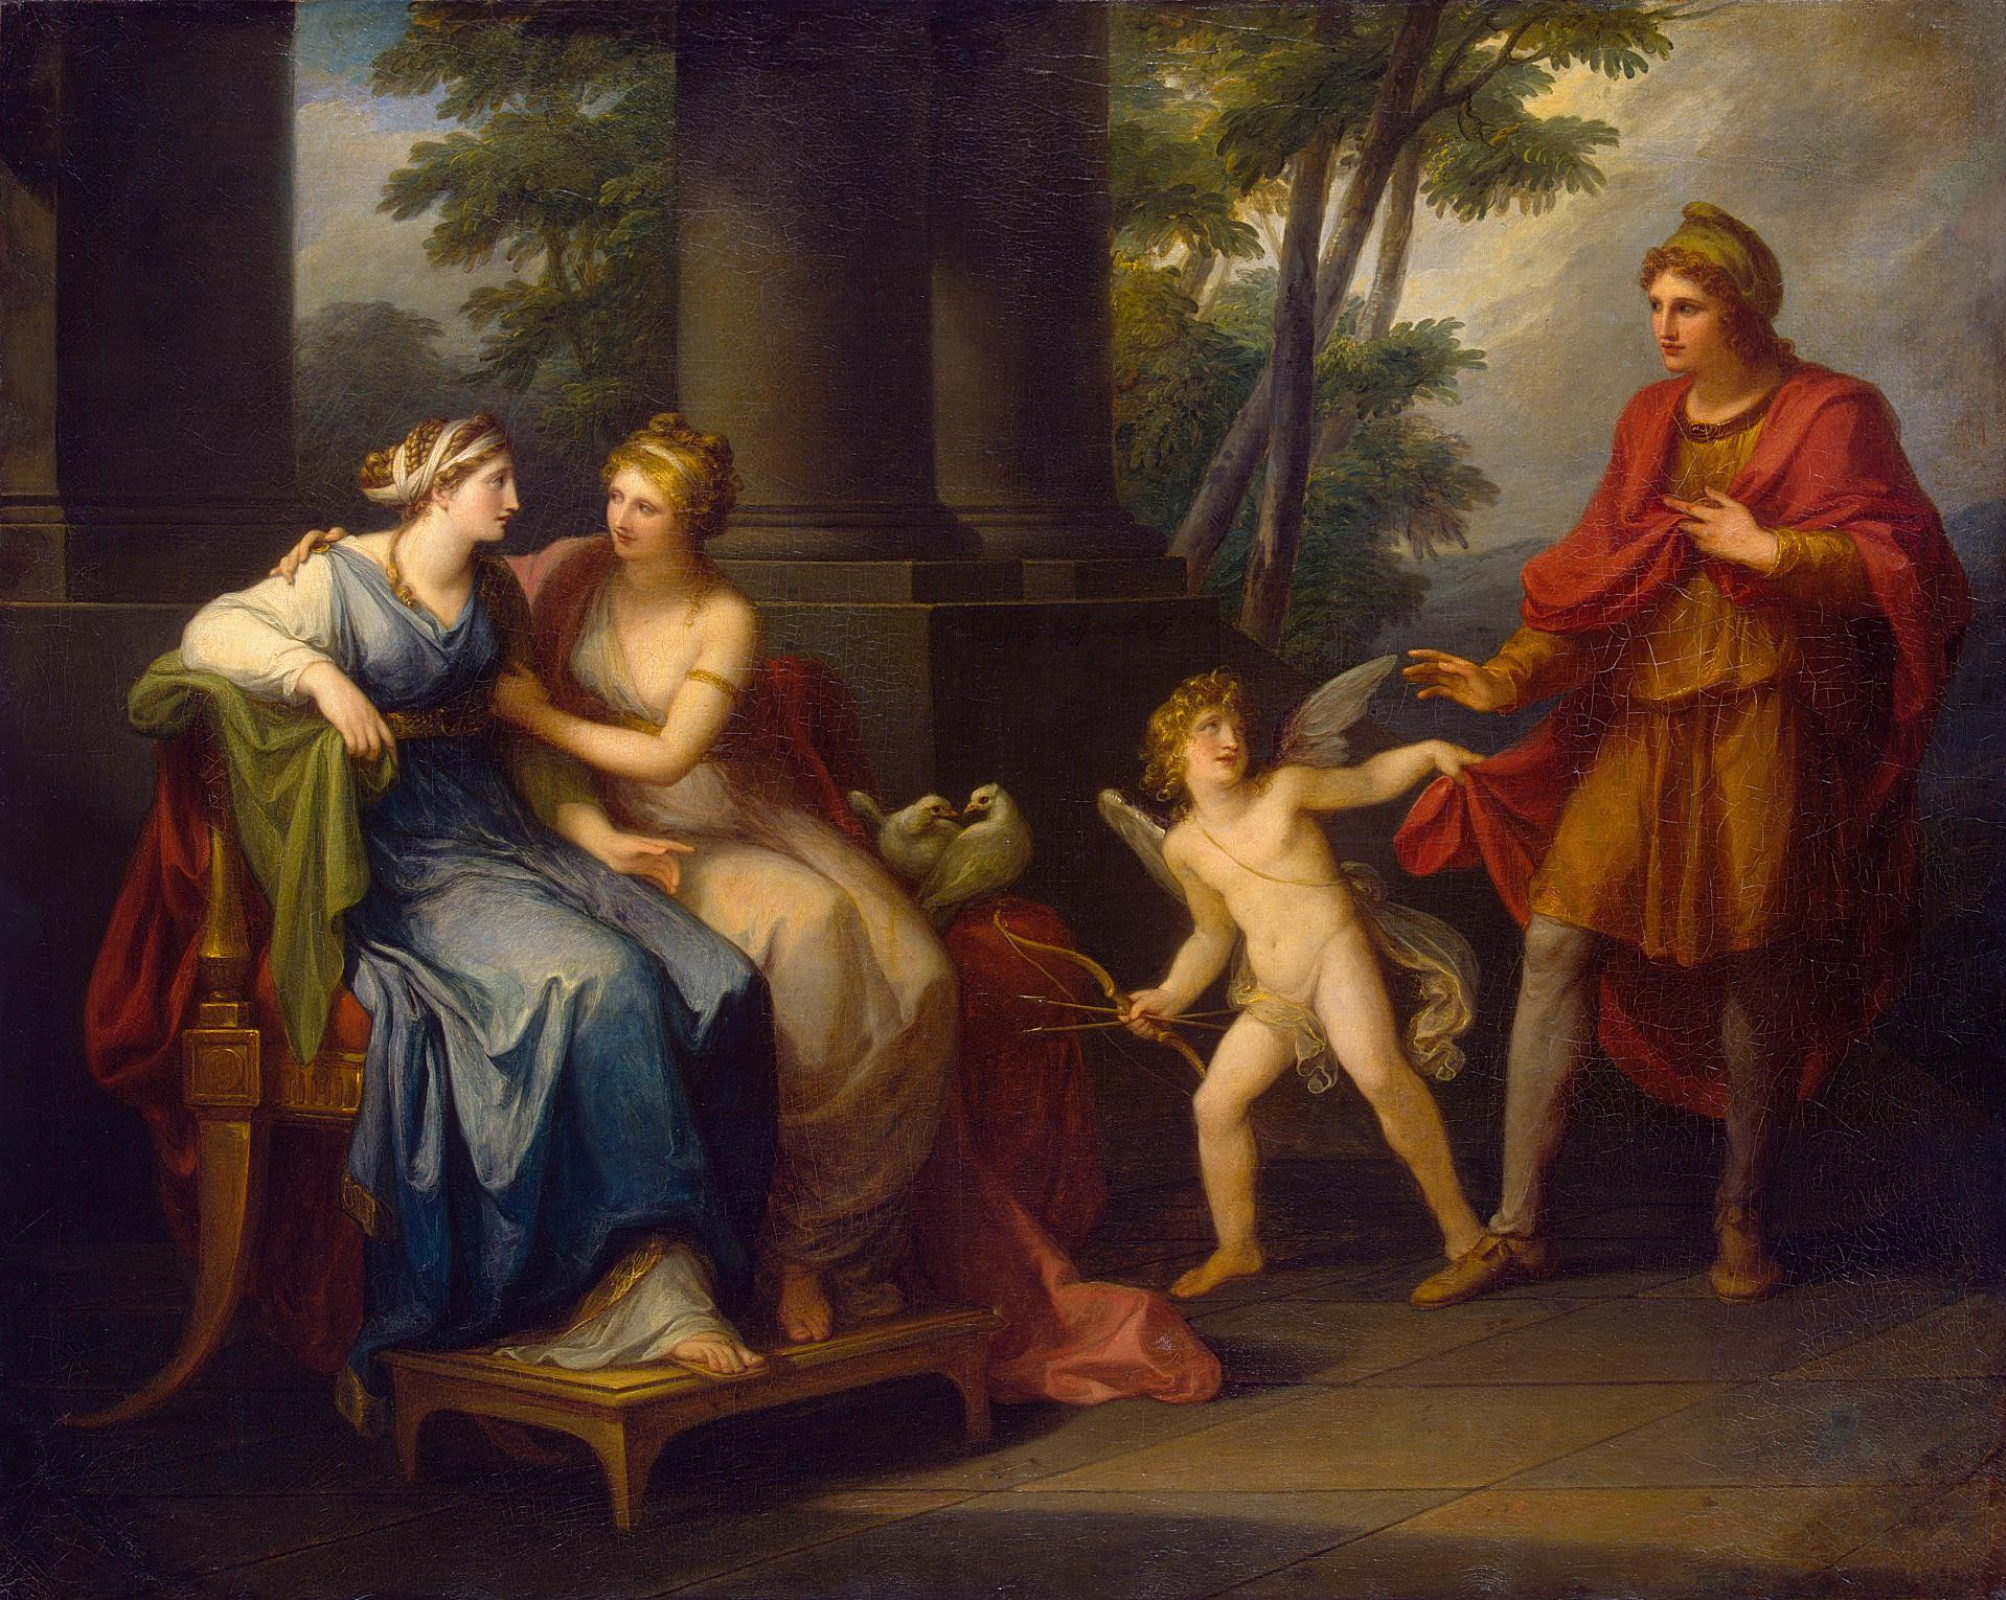 angelica kauffman 1790 Venus persuading Helen to love Paris Ermitage, Saint Petersbourg